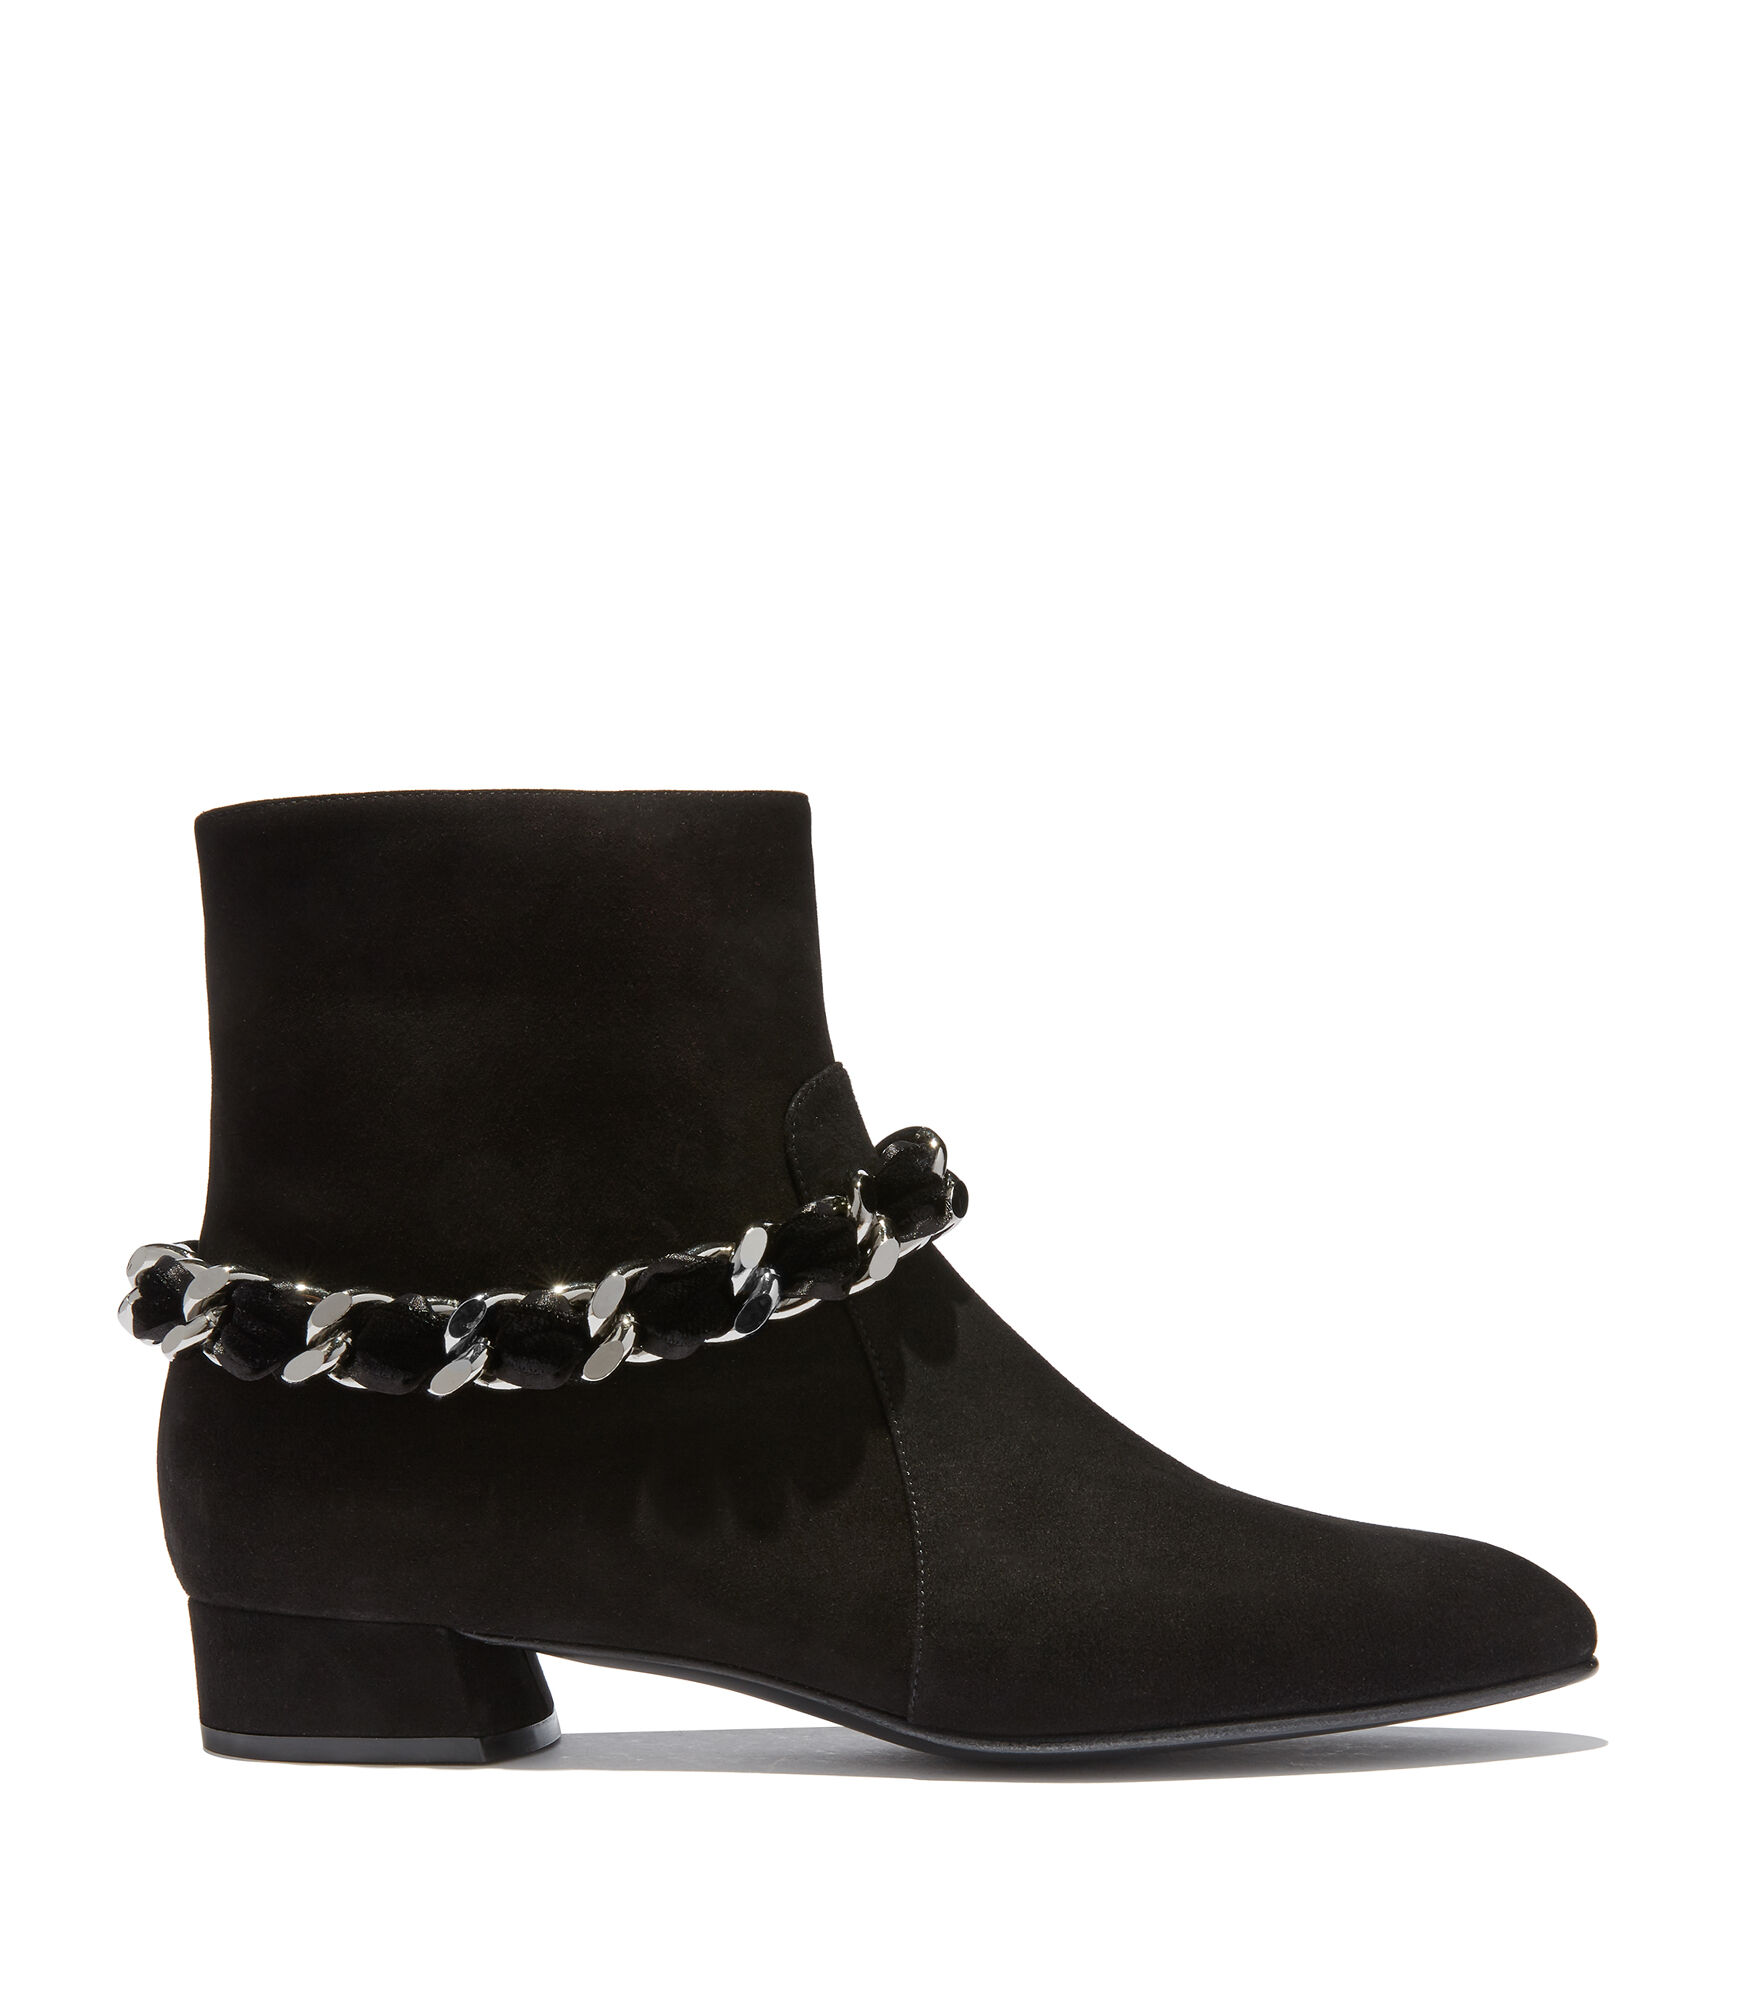 Casadei Ankle Boots - Ilary Black Suede